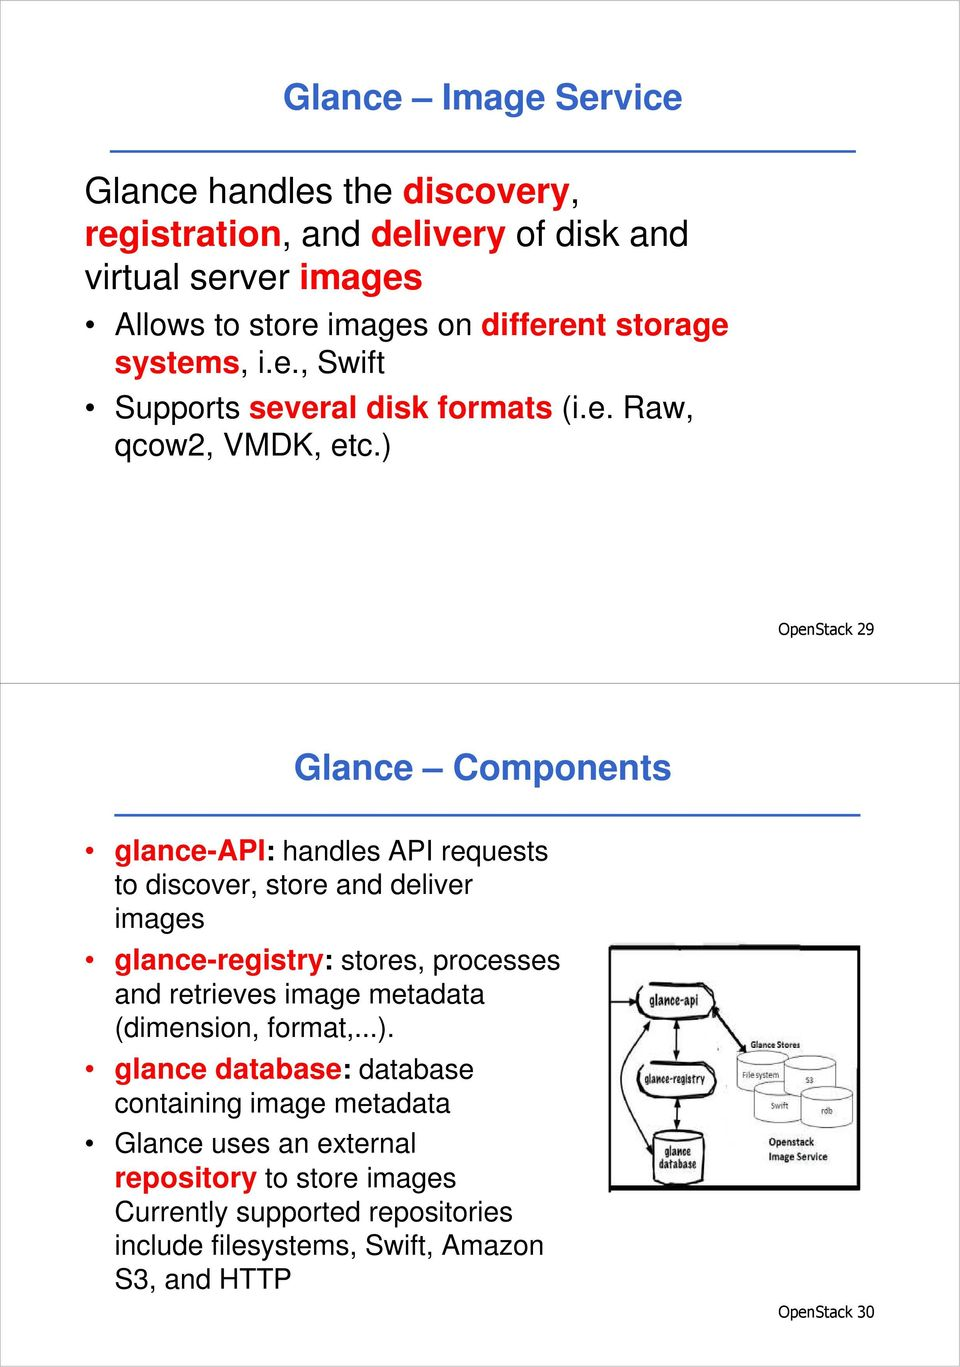 ) OpenStack 29 Glance Components glance-api: handles API requests to discover, store and deliver images glance-registry: stores, processes and retrieves